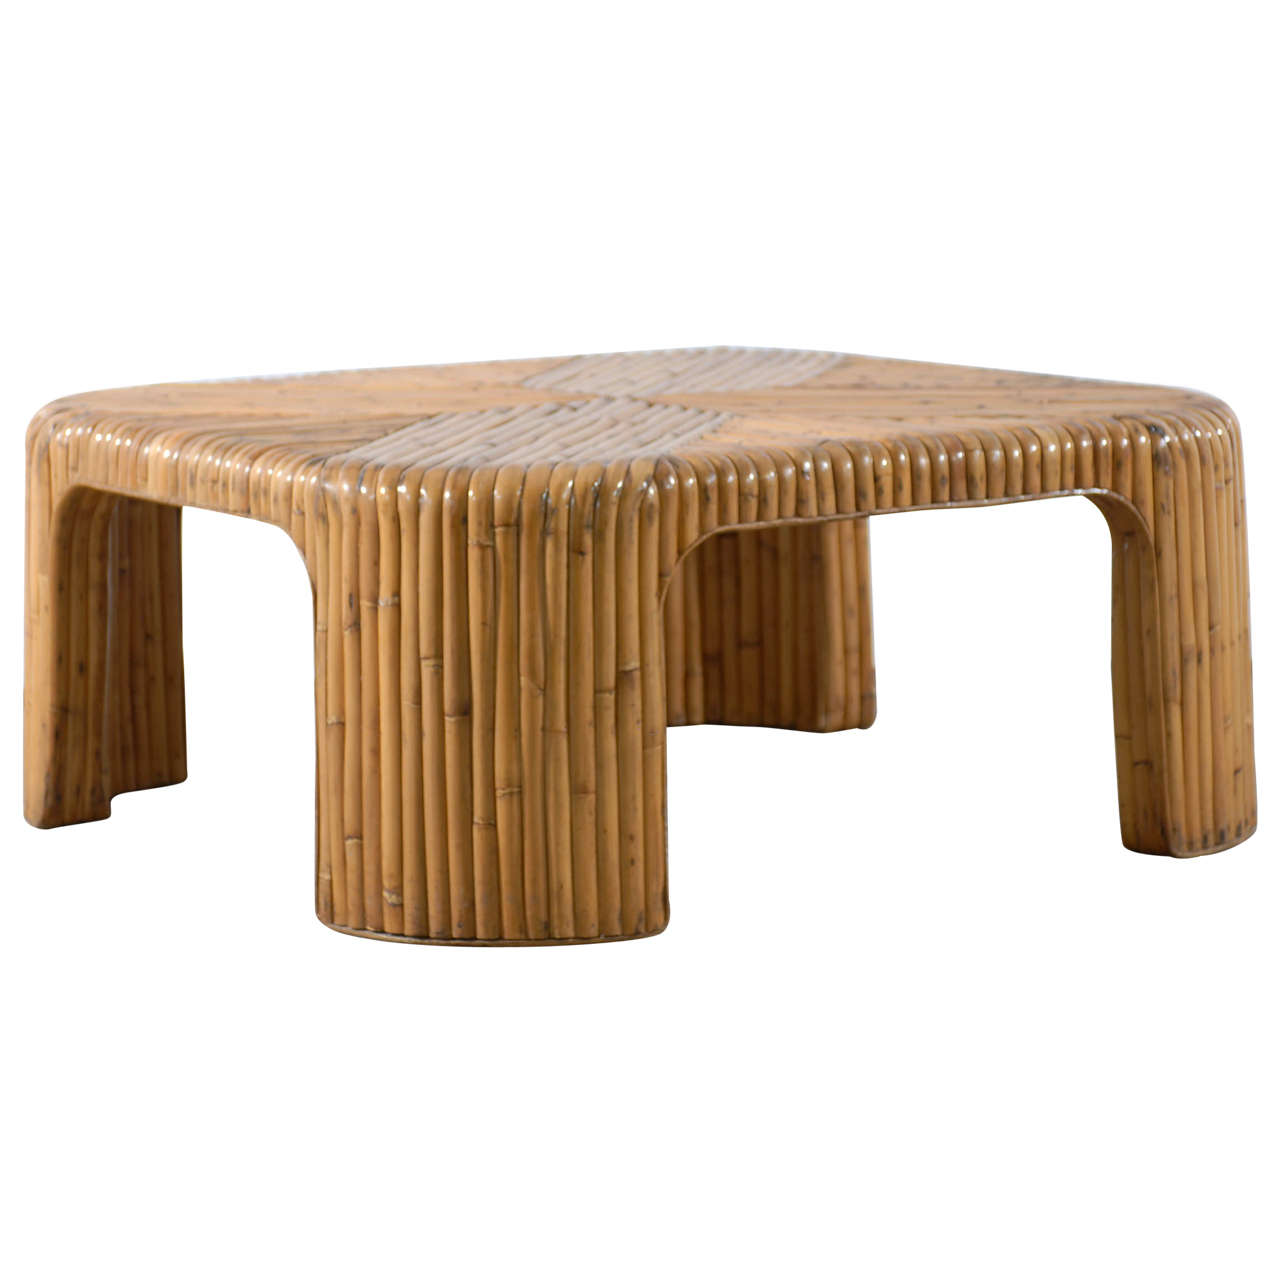 Lovely Vintage Bamboo Coffee Table With Waterfall Corners